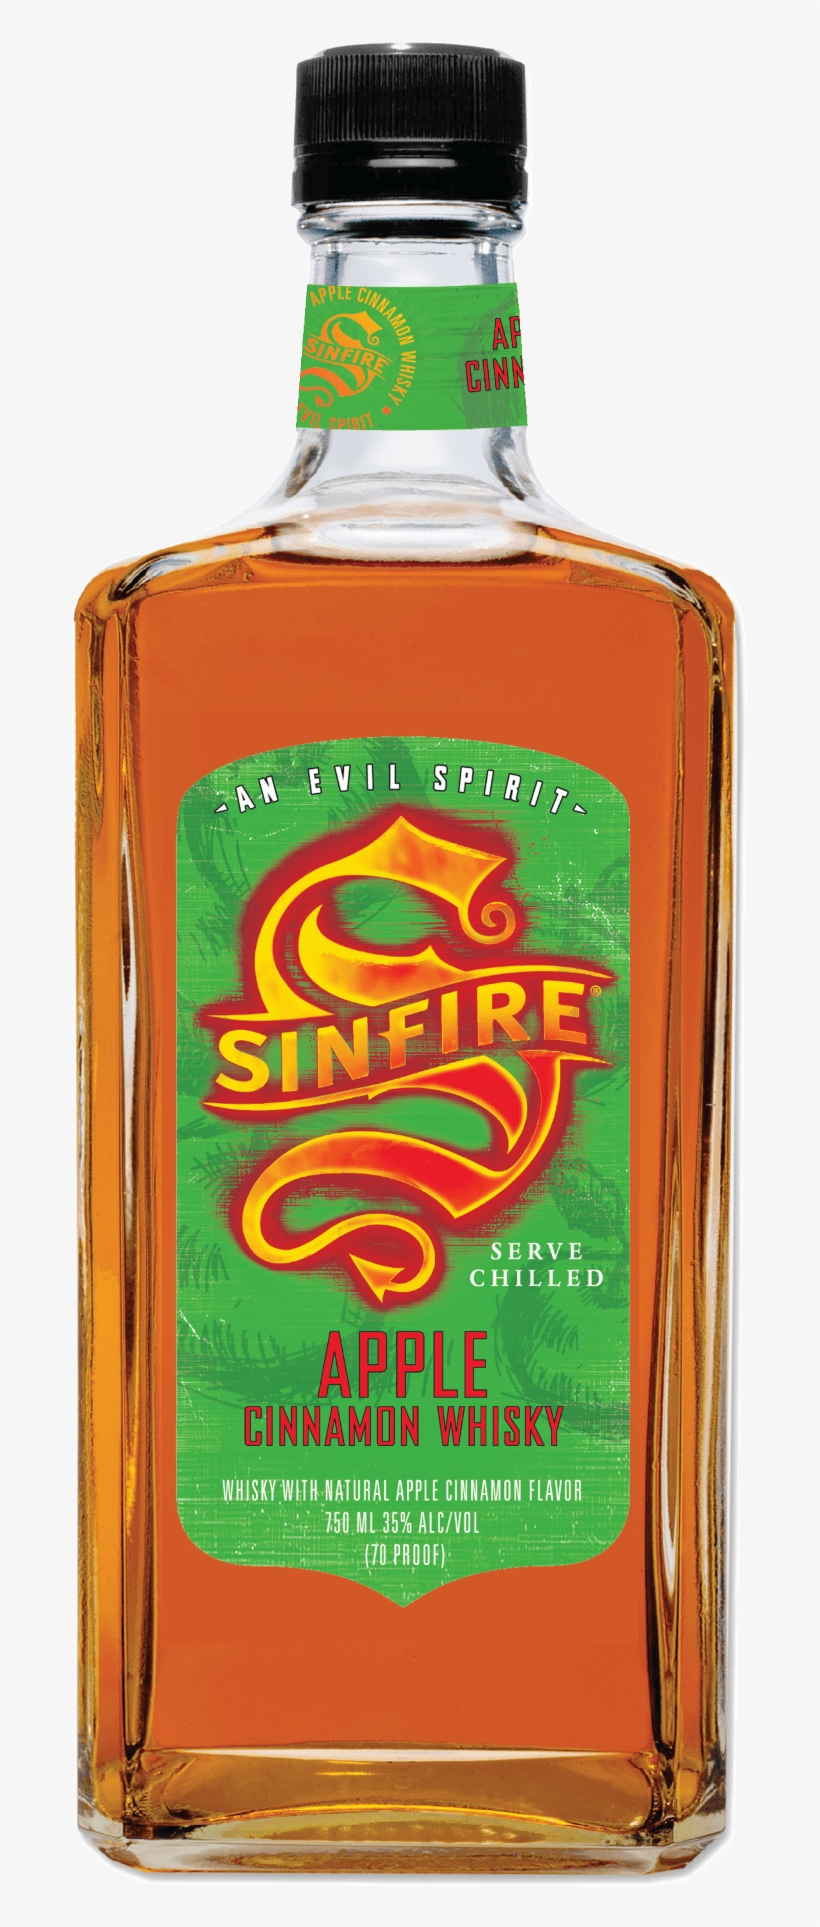 Can You Out-fireball Fireball By Adding Apples To The - Sinfire Apple Cinnamon Whiskey, transparent png #1648890